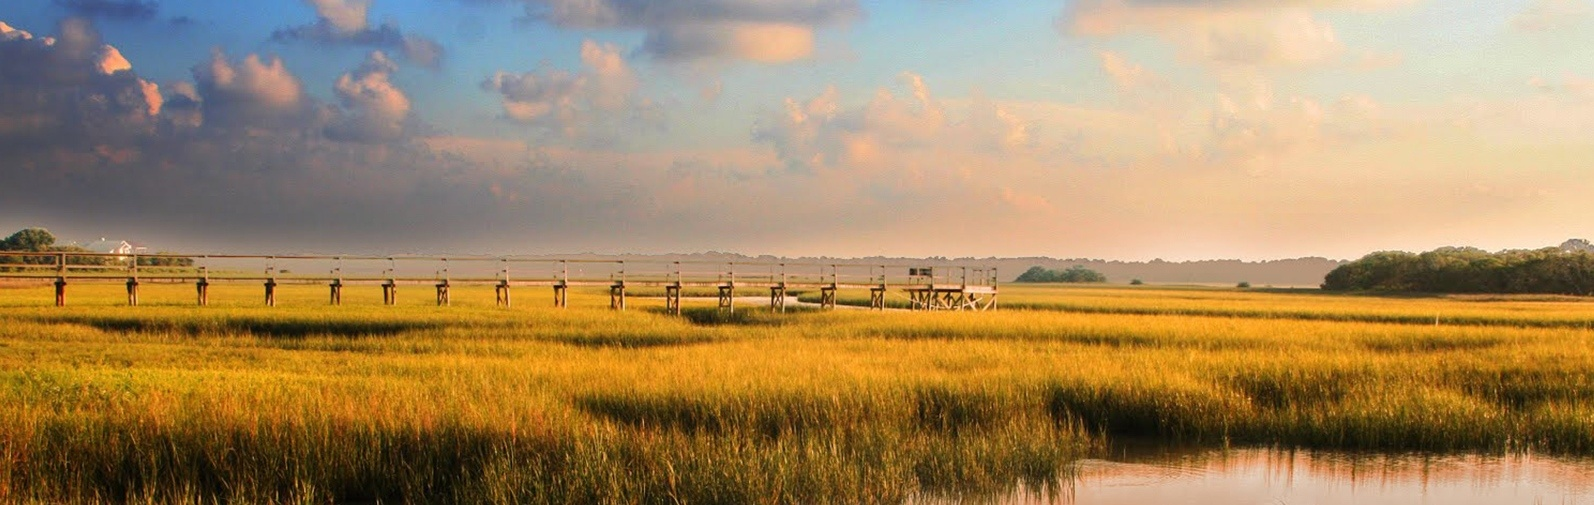 Marsh Views in Jacksonville, Florida